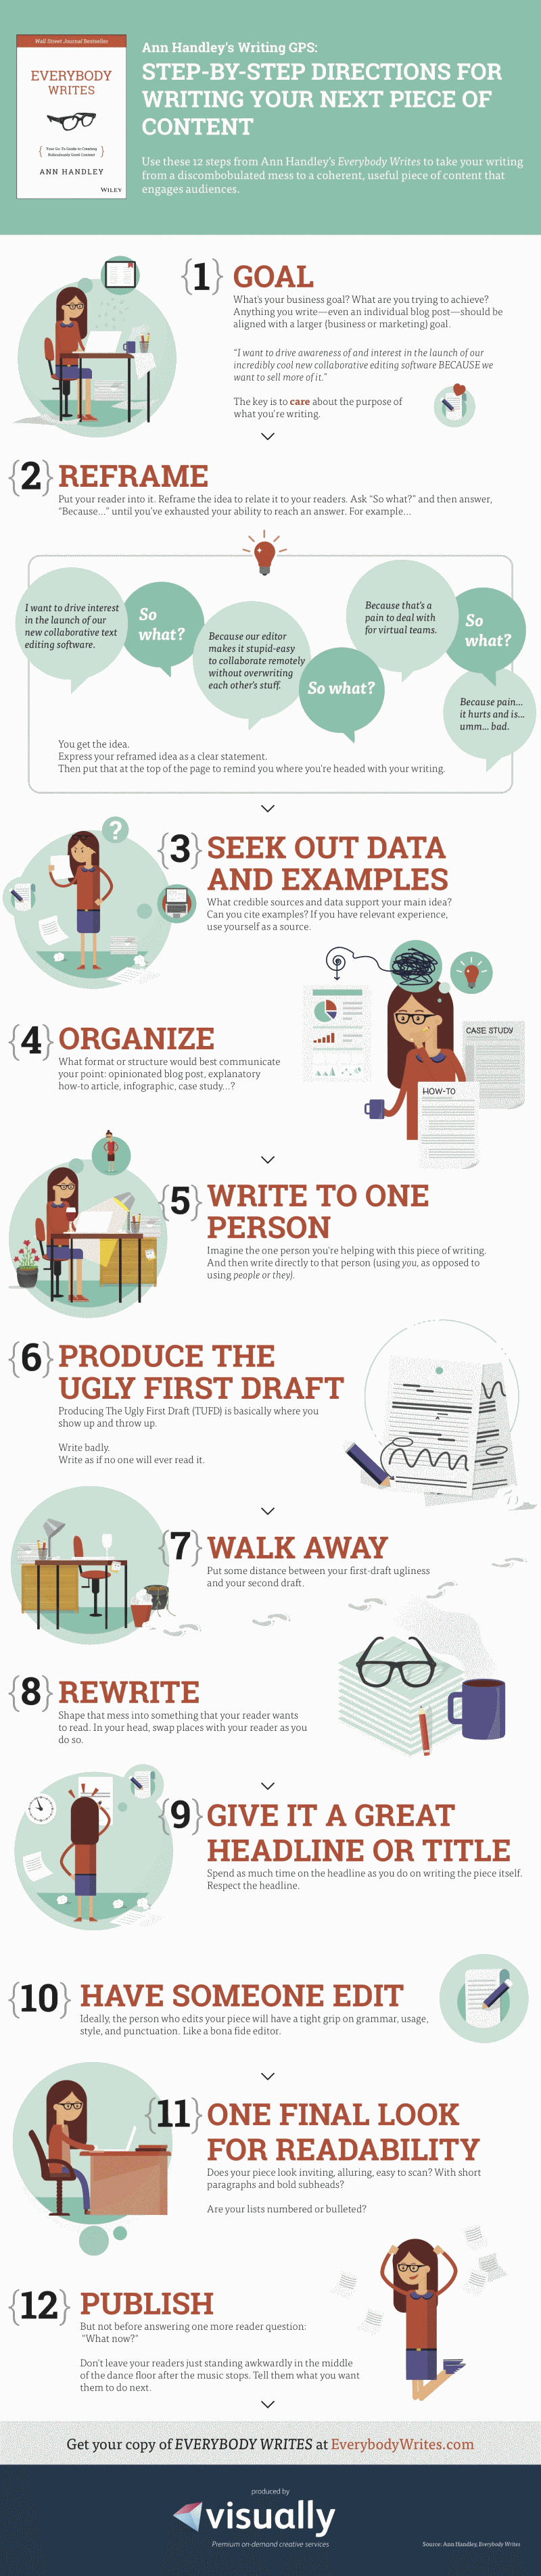 ann handley: everybody write, infographic